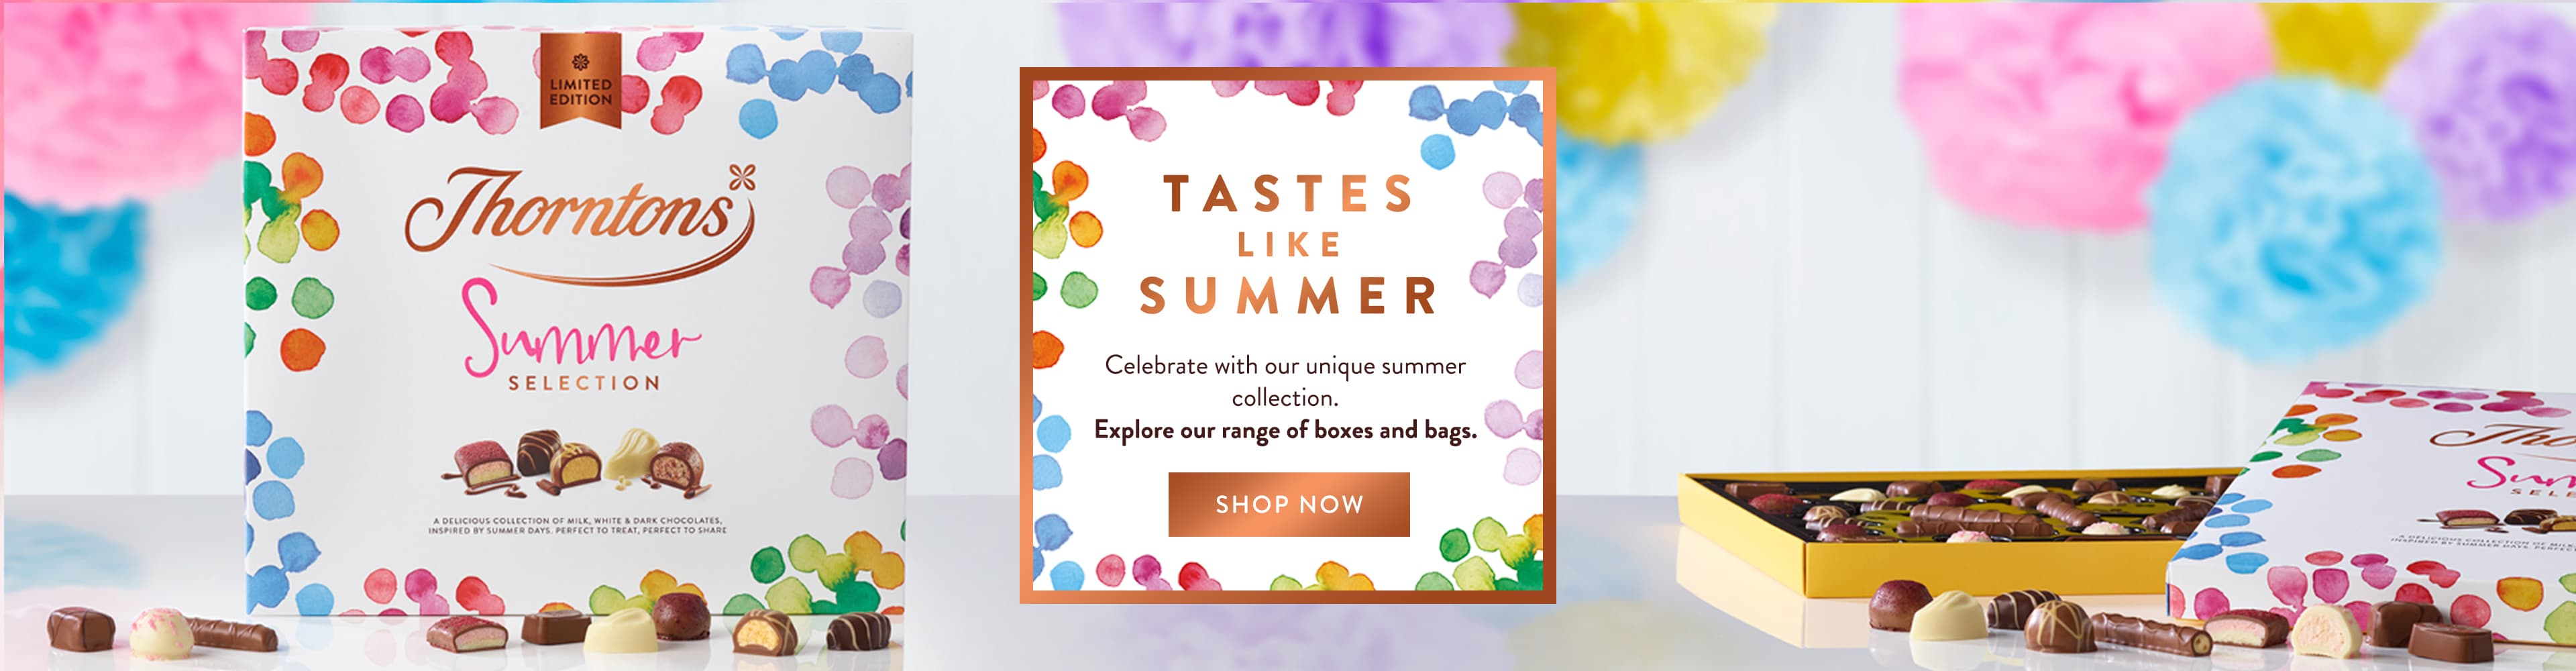 Summer is a season of celebration! Thorntons unique and personalised chocolates are just the thing.